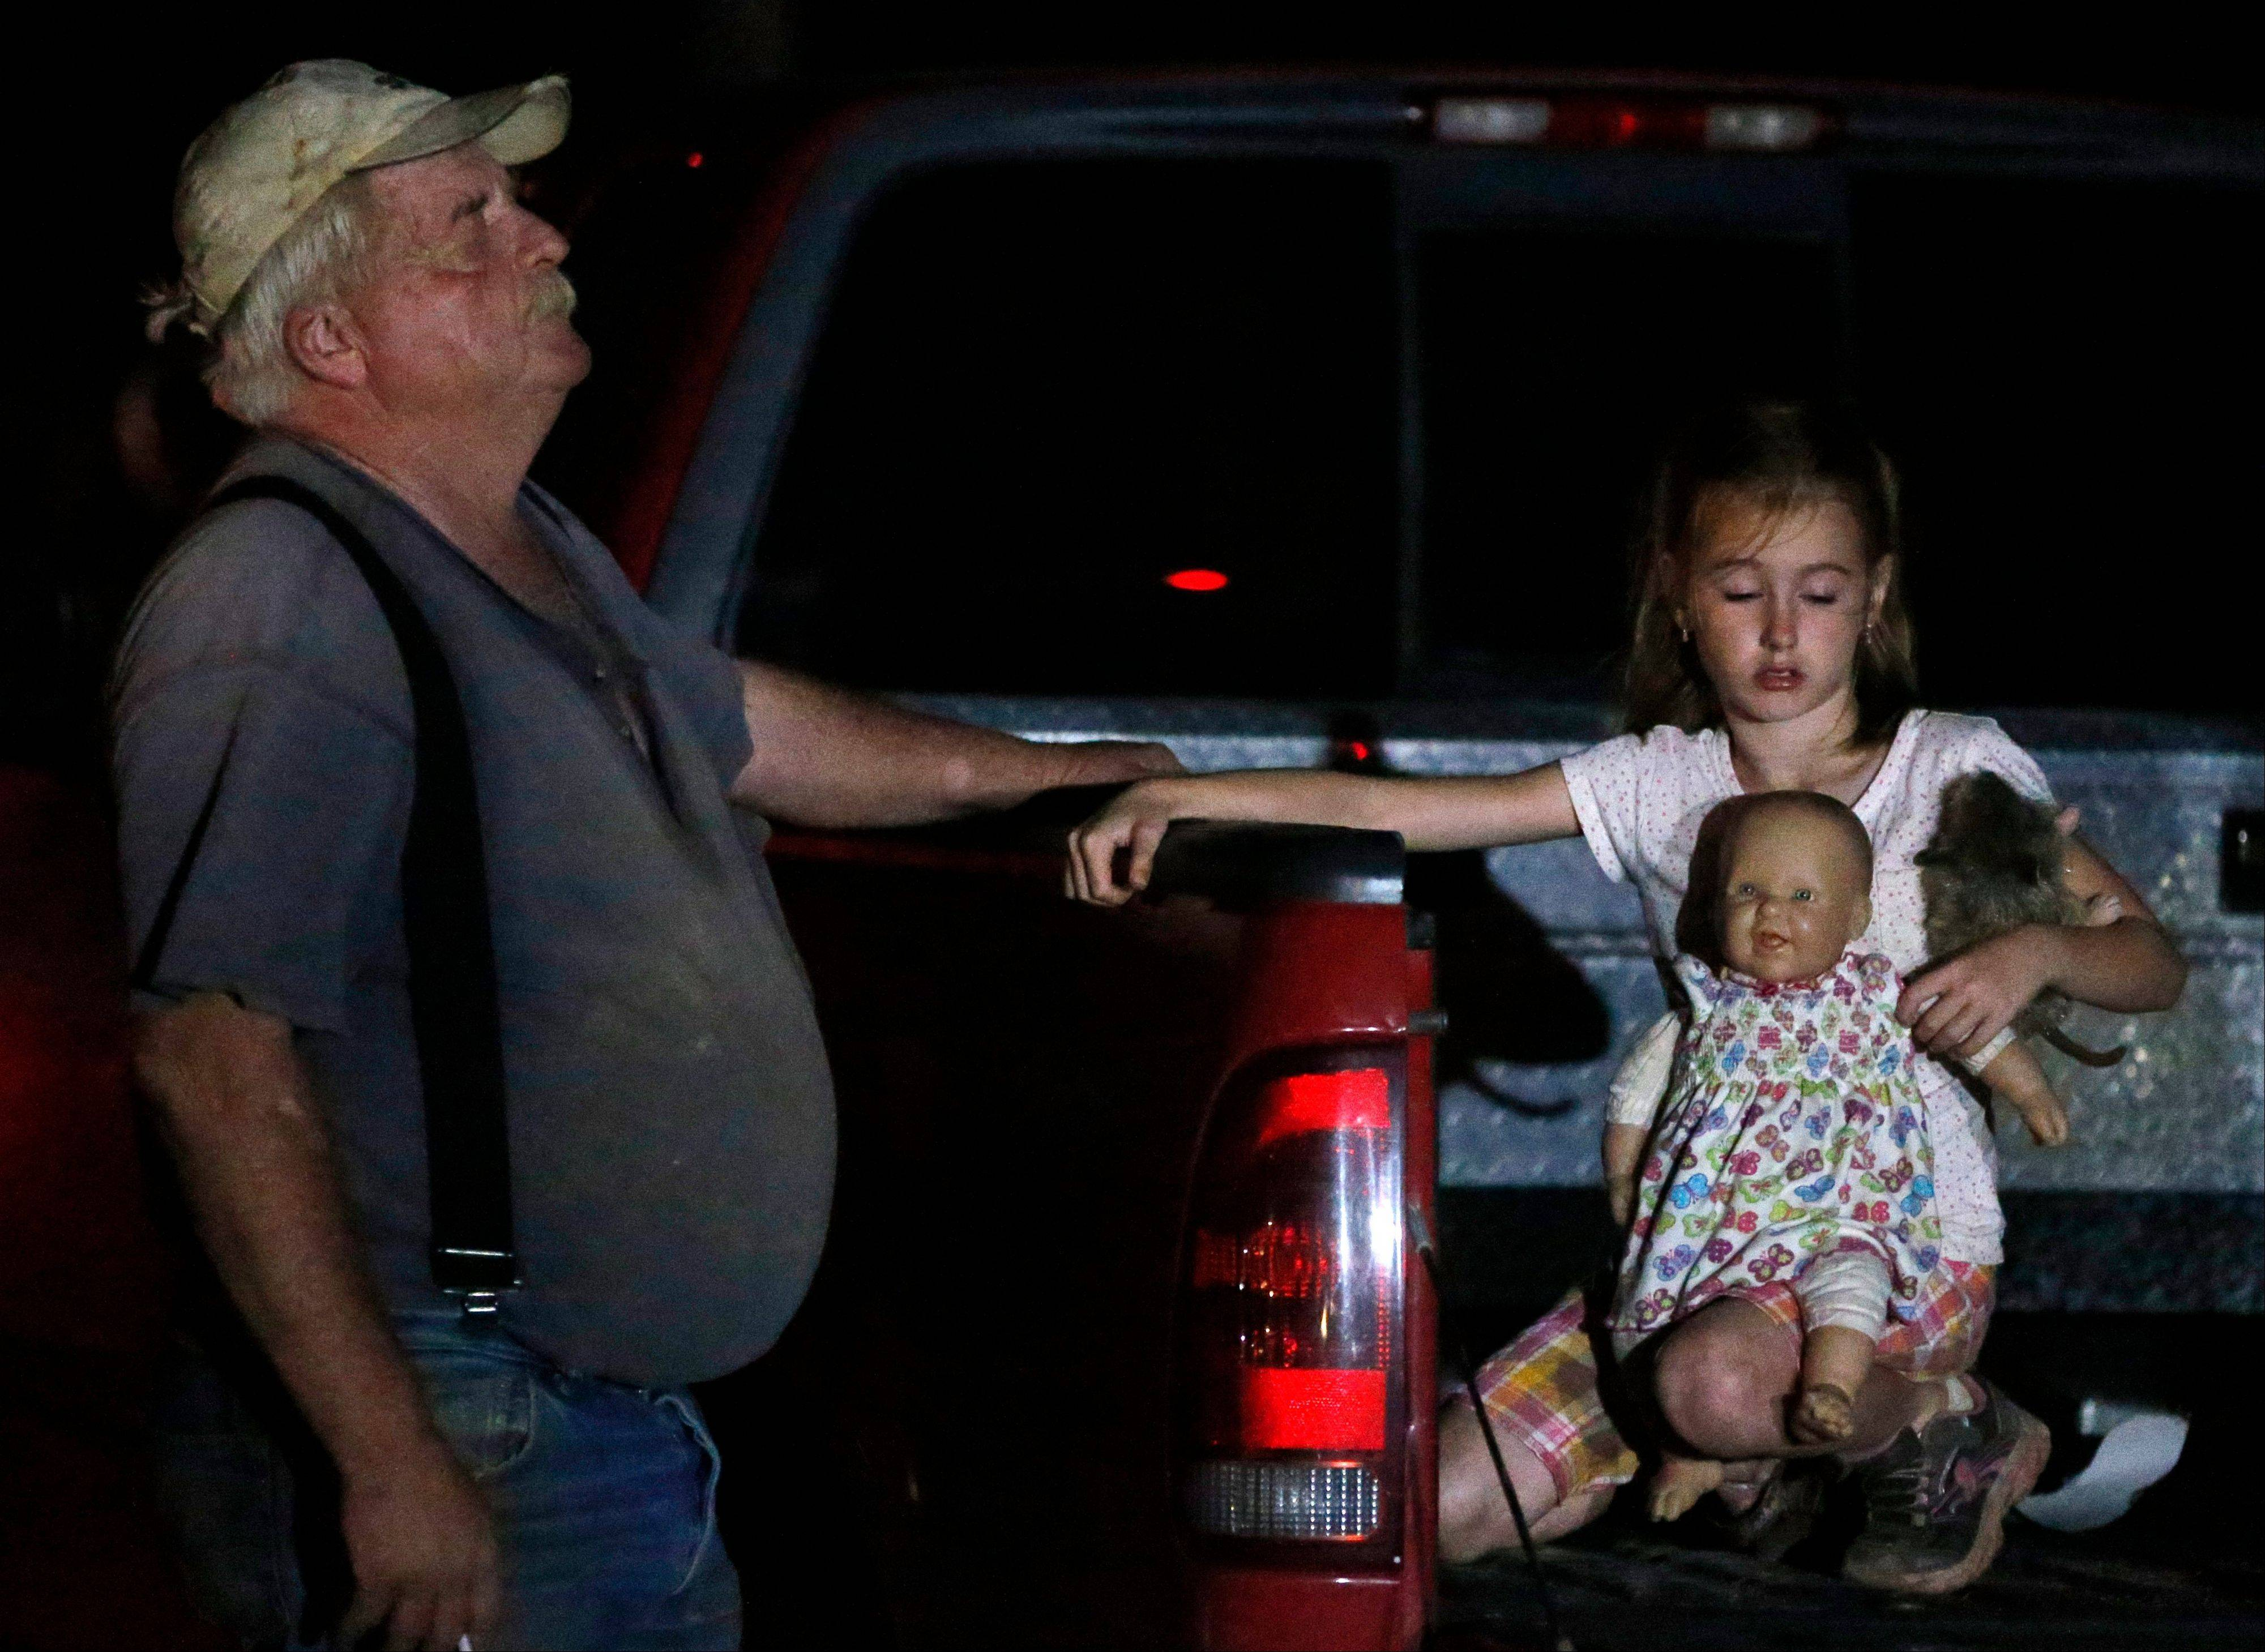 Seven-year-old Katrina Ash, right, holds a doll as she waits in the back of a truck with her grandfather, Michael Bowen, left, after a tornado ripped through their neighborhood near Dale, Okla., Monday, May 19, 2013.